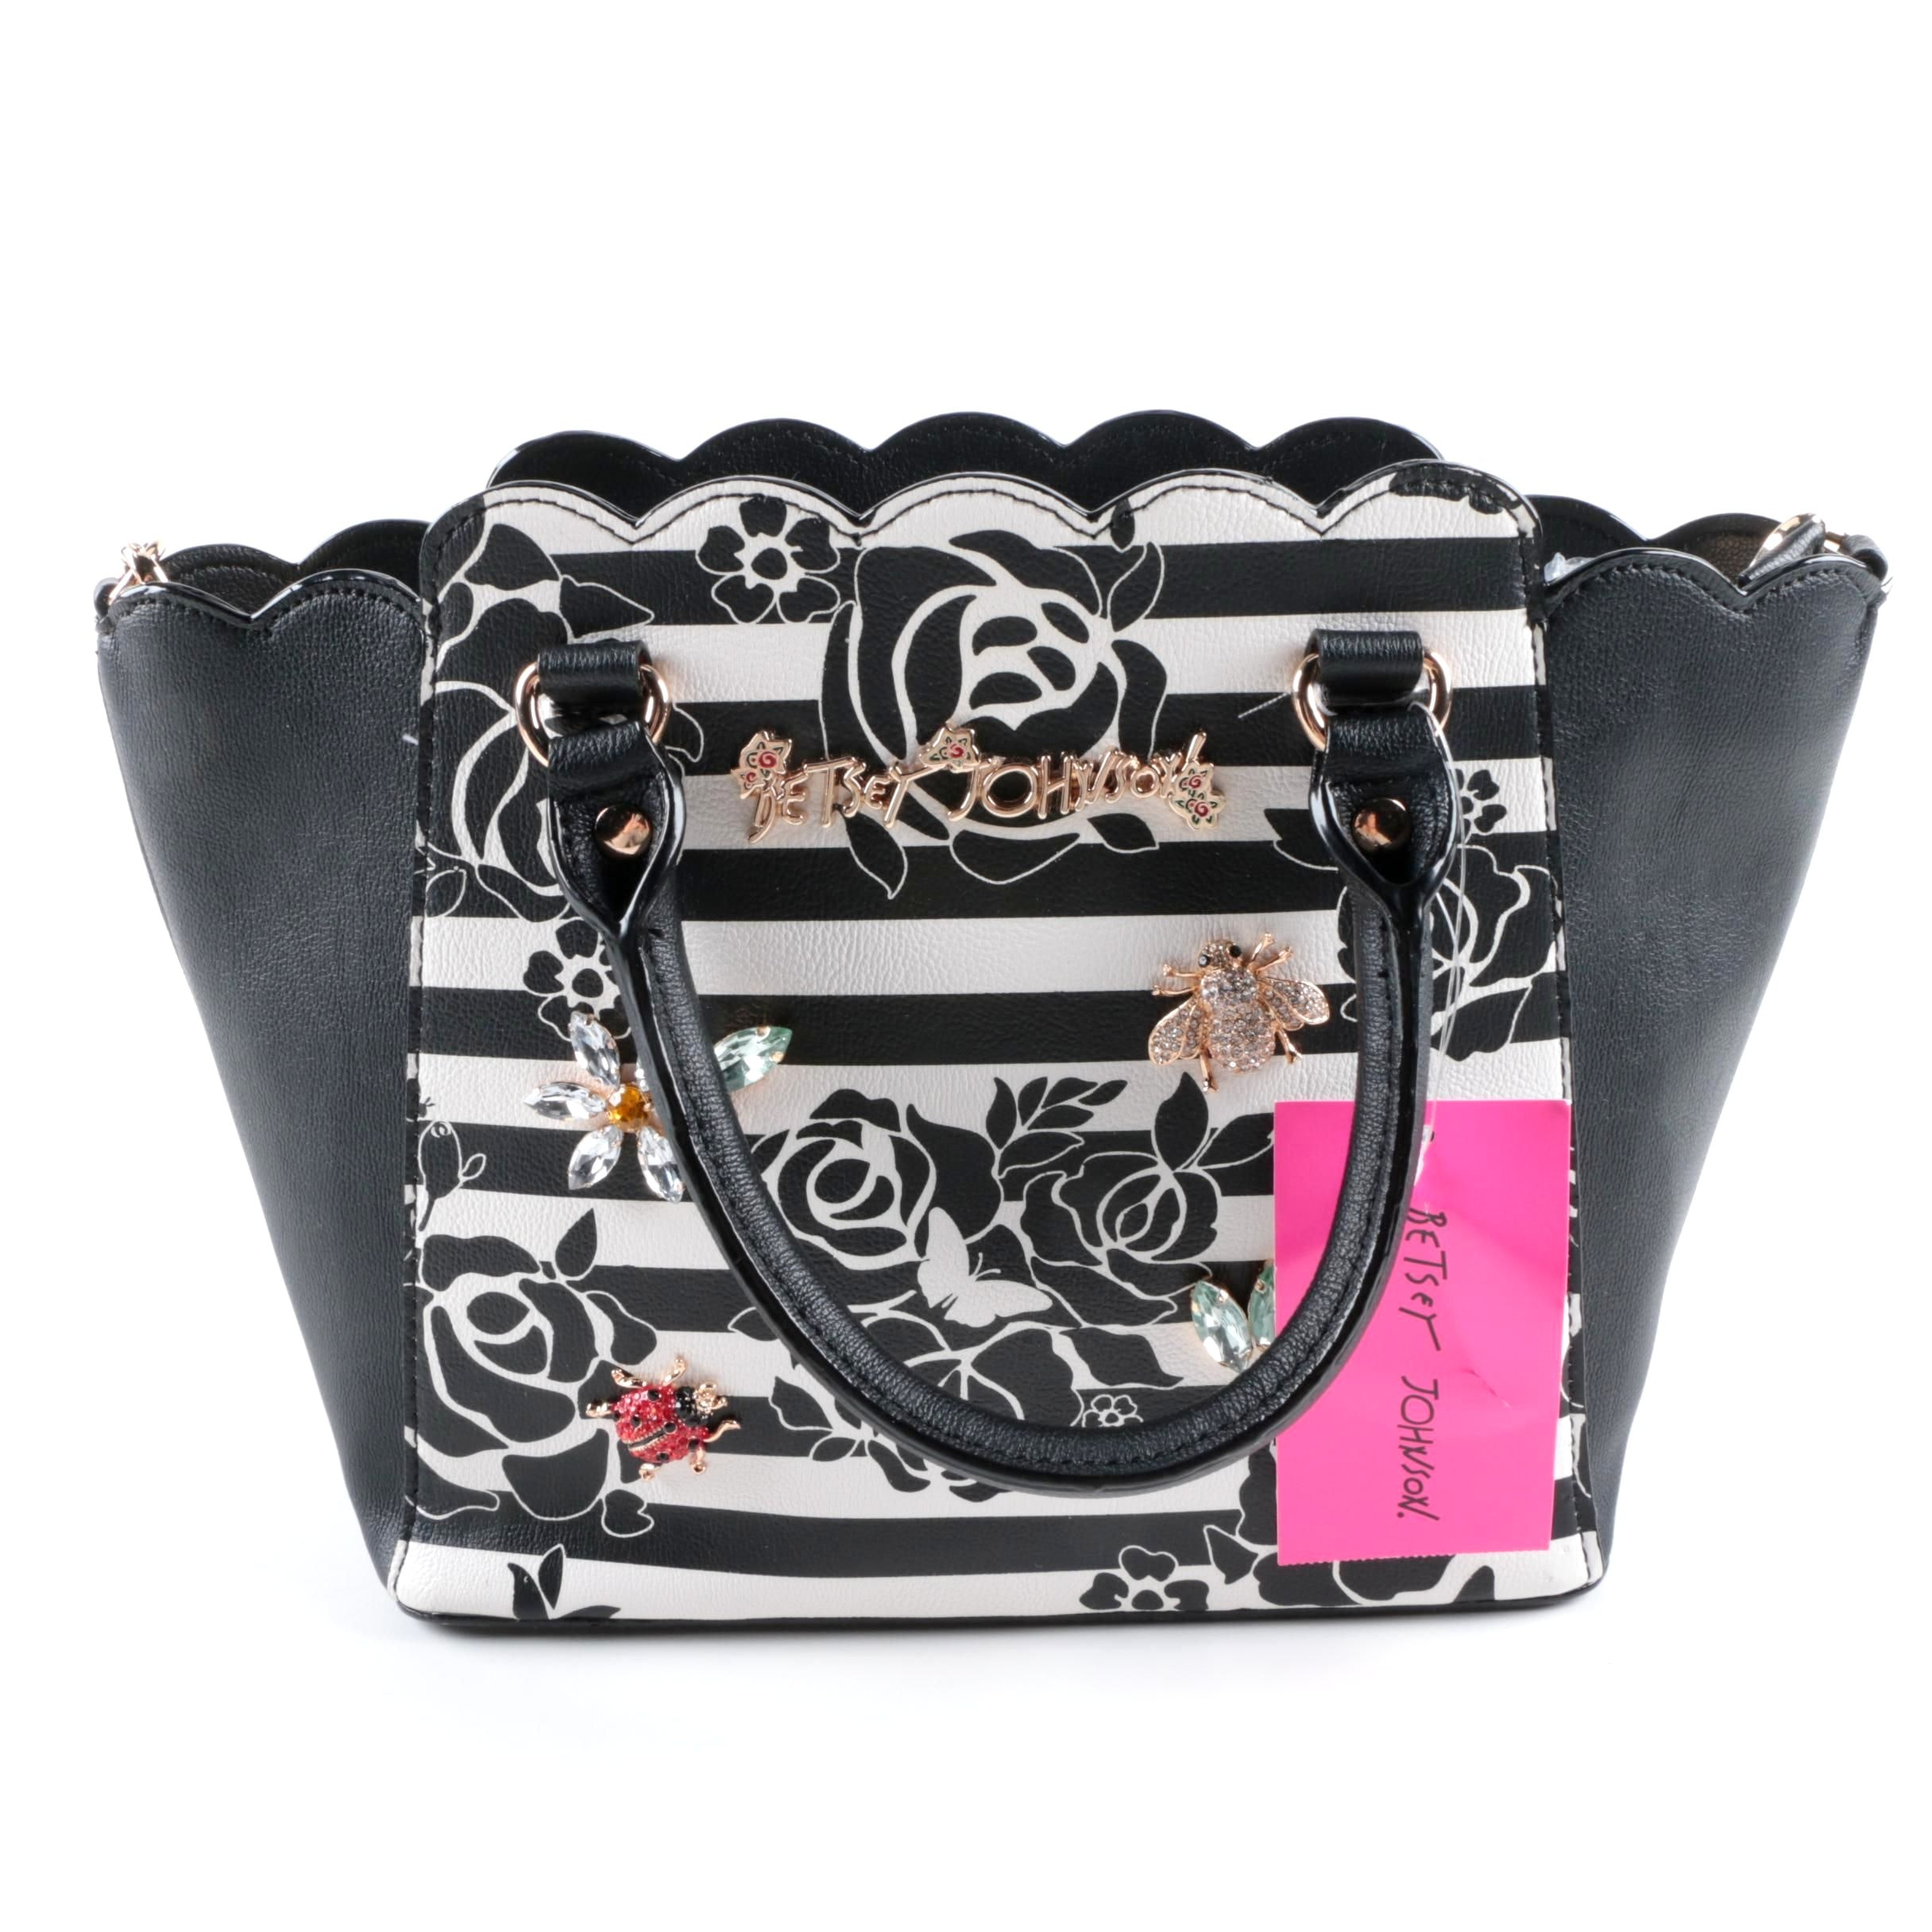 Betsey Johnson Glam Garden Satchel